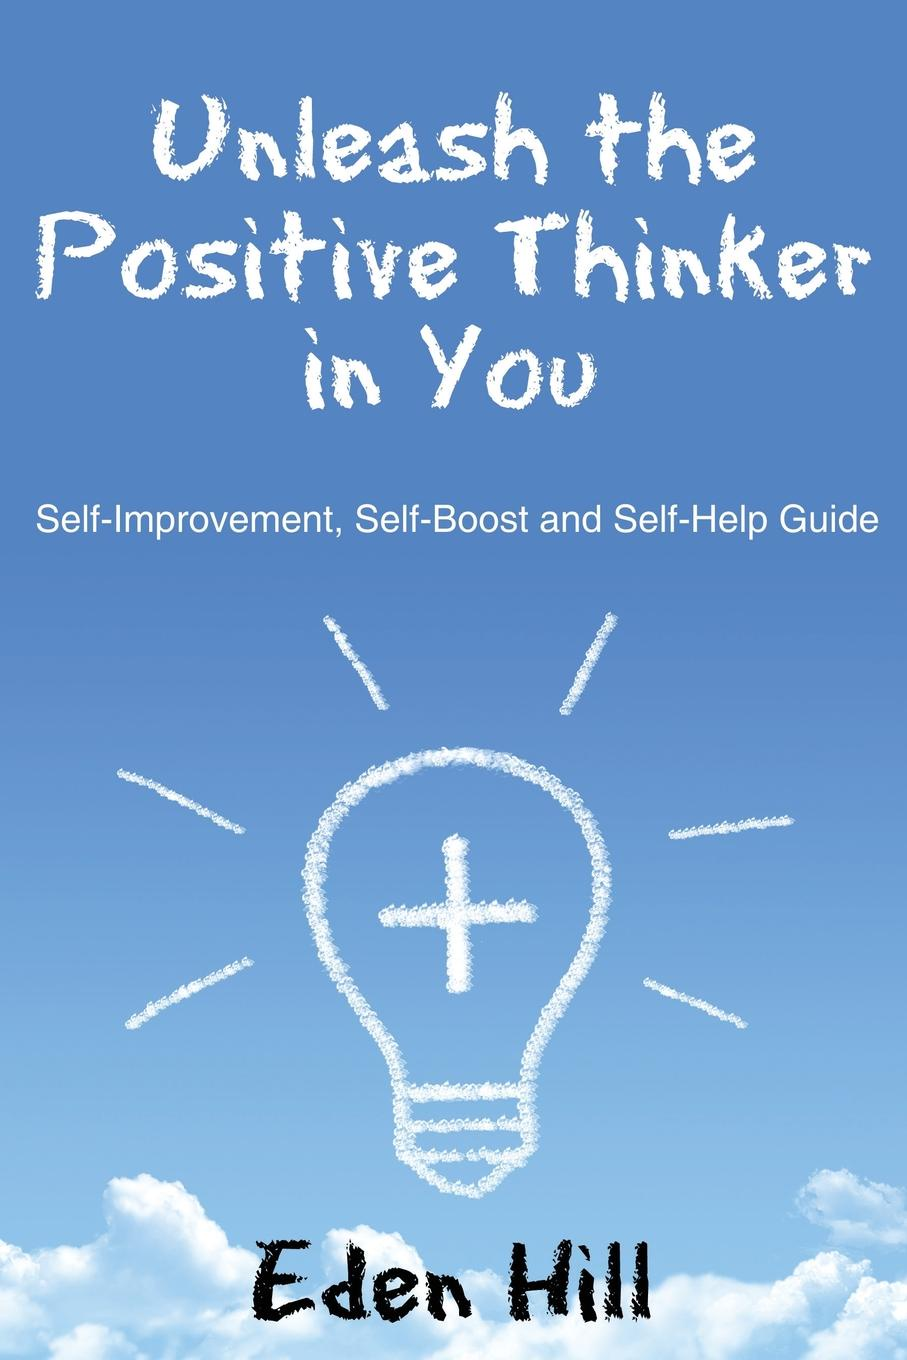 Eden Hill Unleash the Positive Thinker In You. Self-Improvement, Self-Boost and Self-Help Guide the road to a positive life